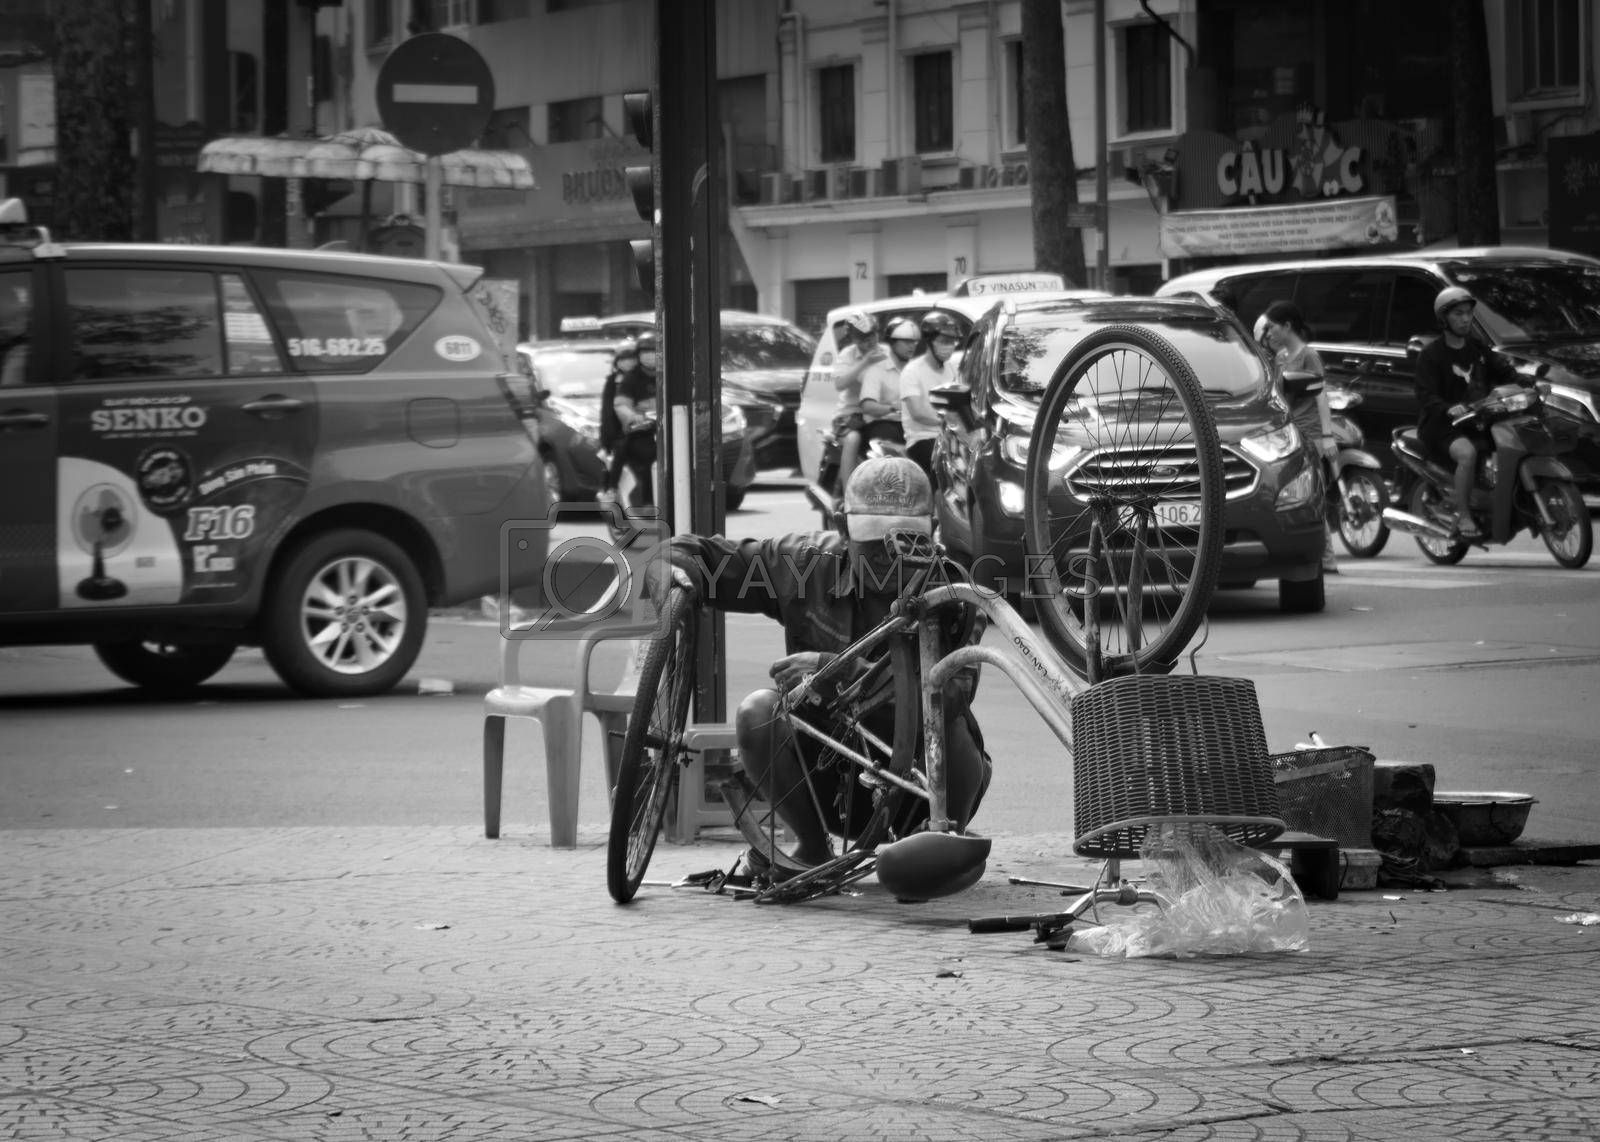 Royalty free image of 2019-11-12 / Ho Chi Minh CIty, Vietnam - A man repairing an old bicyle on a sidewalk. Black and white. by hernan_hyper